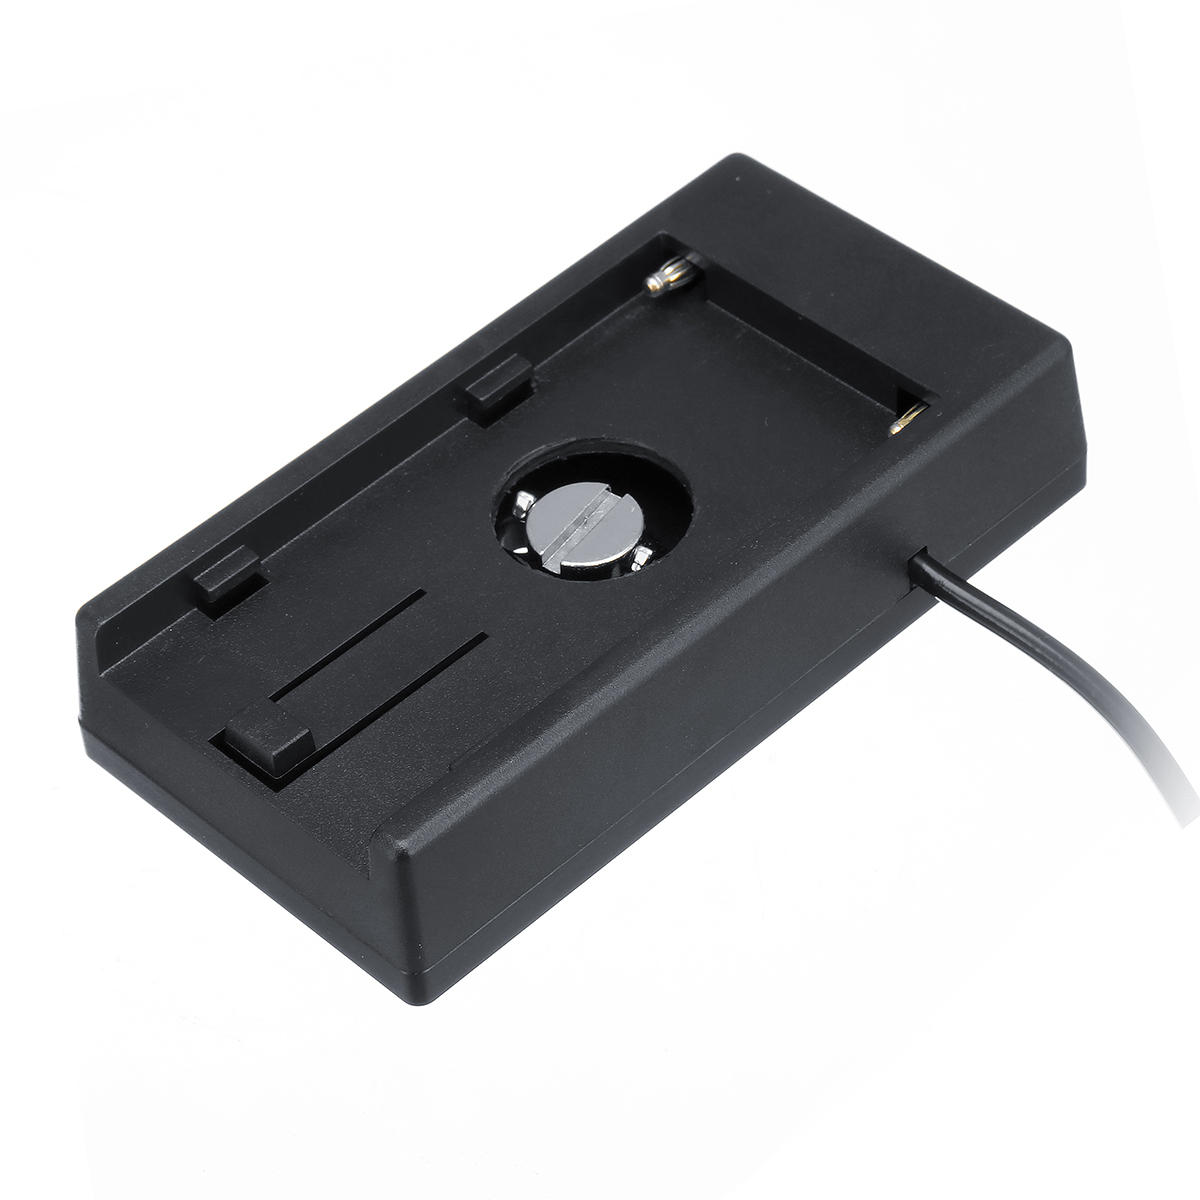 Camera Battery Power Supply System Plate Aviation Connector for BMPCC 4K F 970 F970 Camera - 4